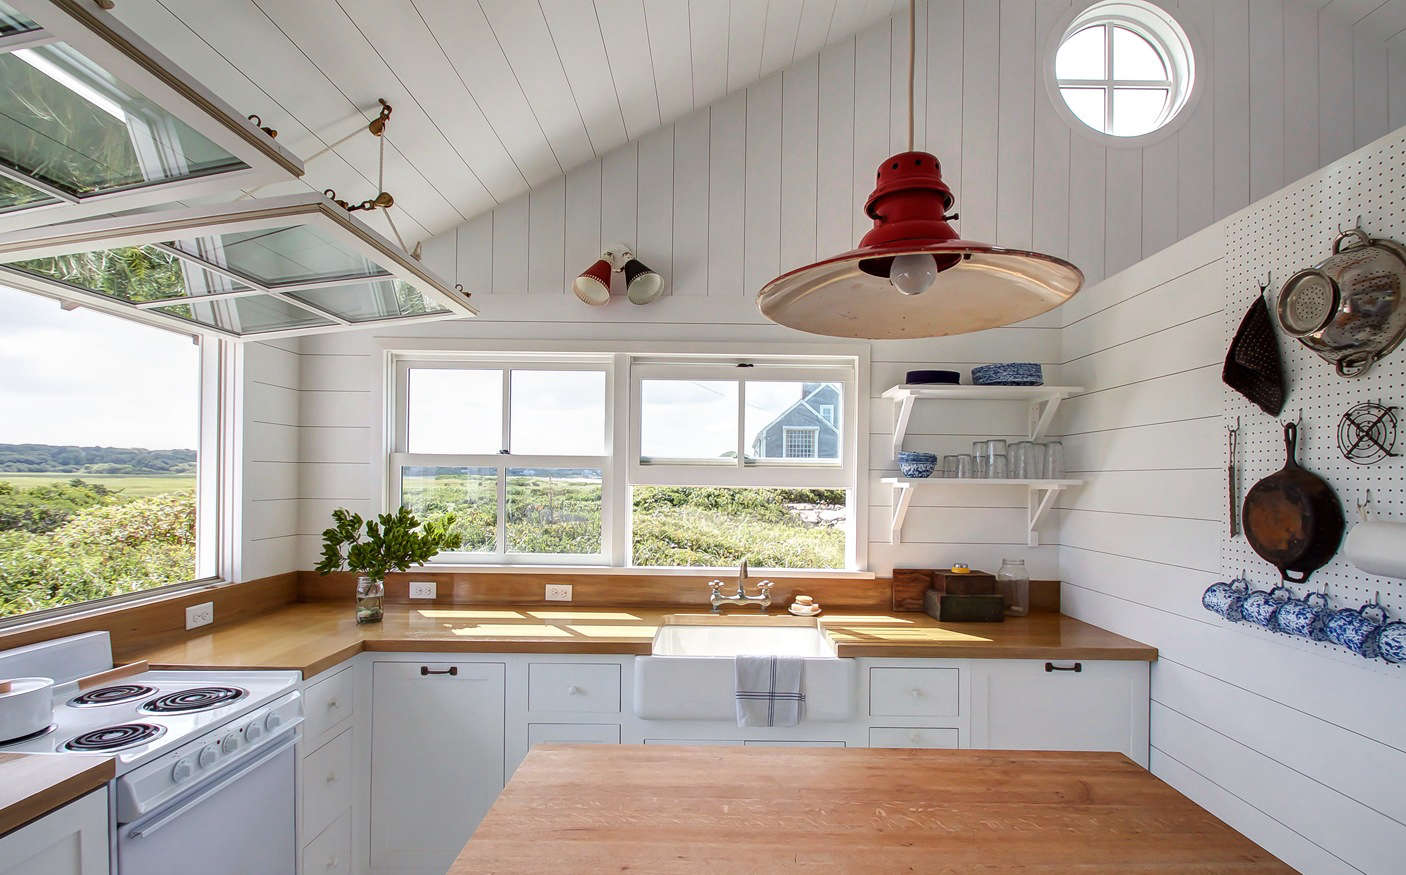 Kitchen of the Week: A Compact, Nautical Entertaining ...